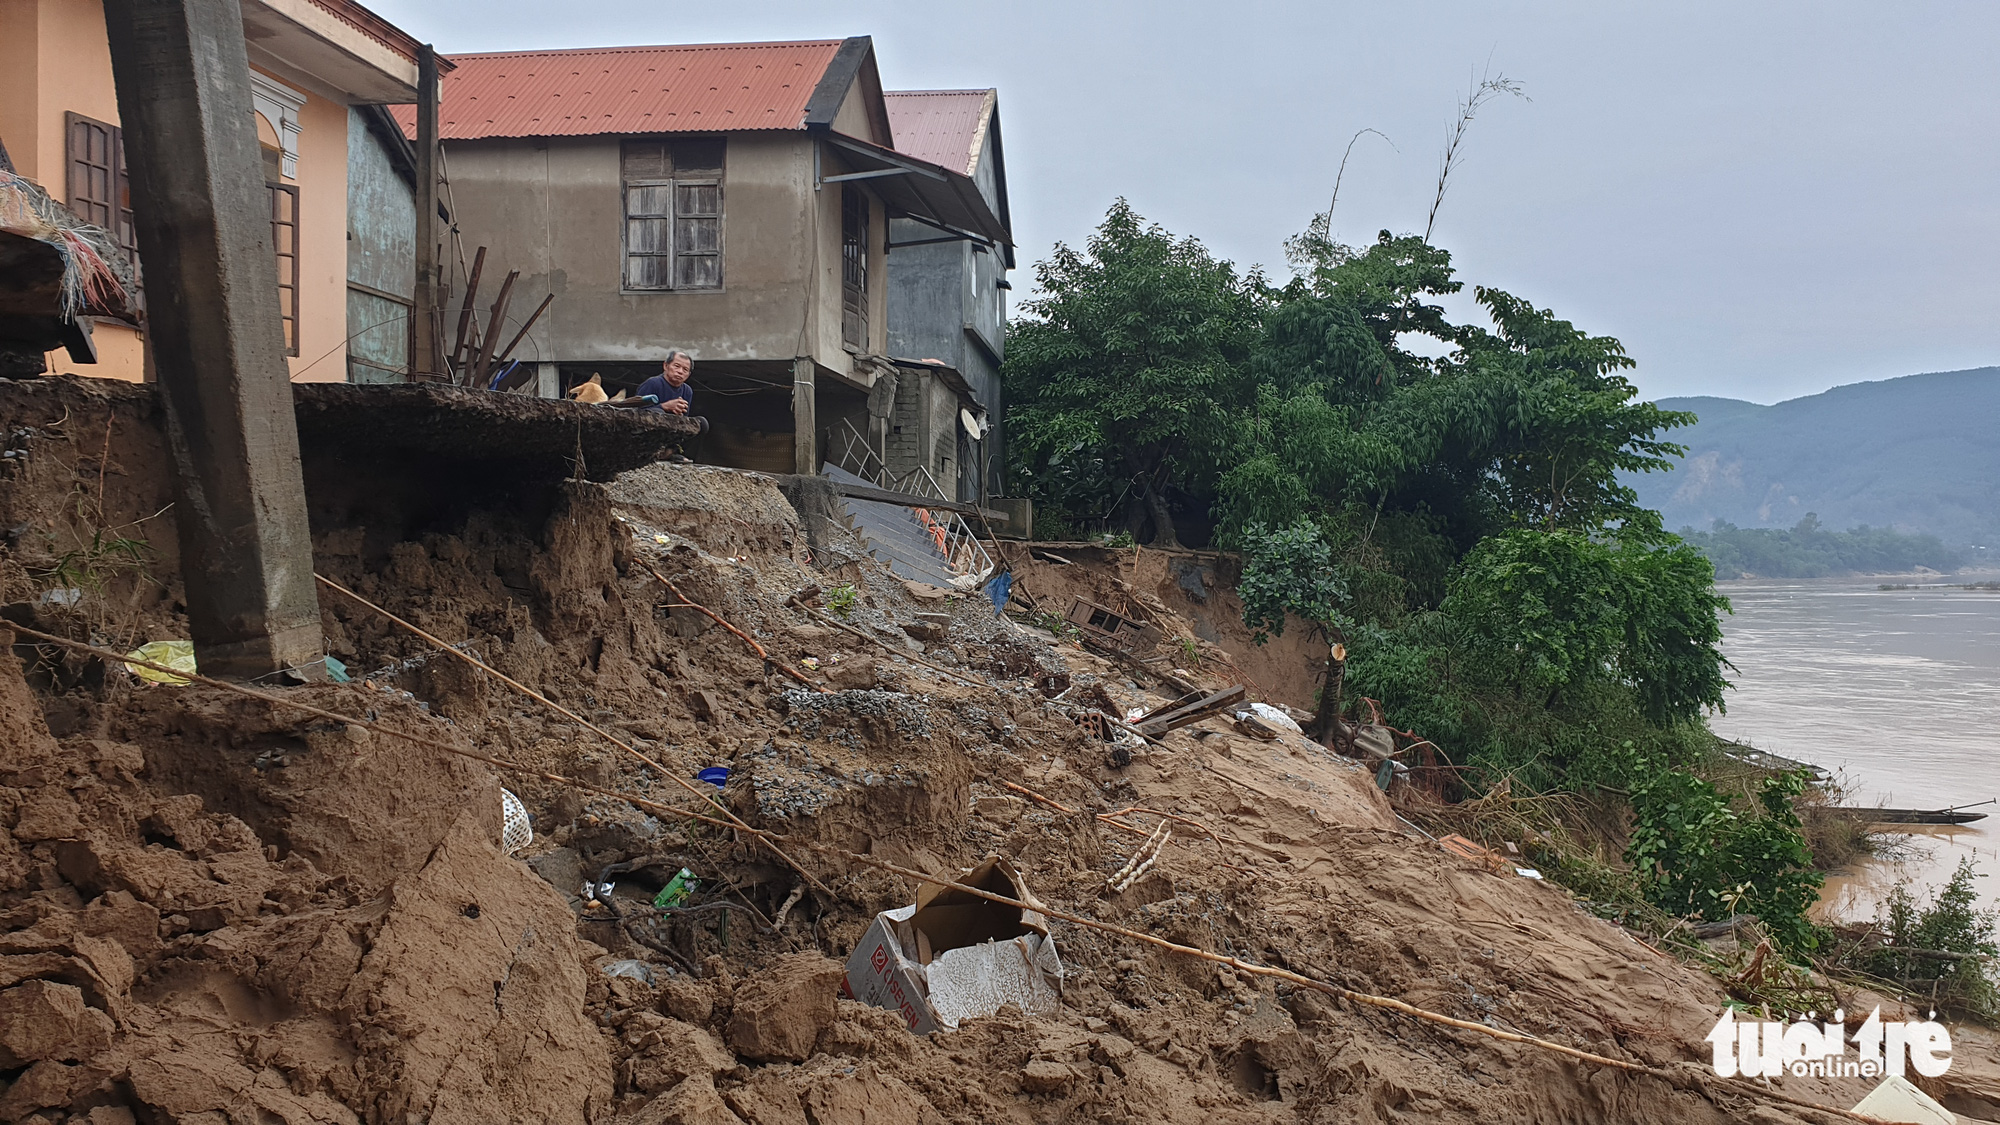 Landslide occurs at a residential area in Tuyen Hoa District, Quang Binh Province, Vietnam, October 2020. Photo: Tuoi Tre